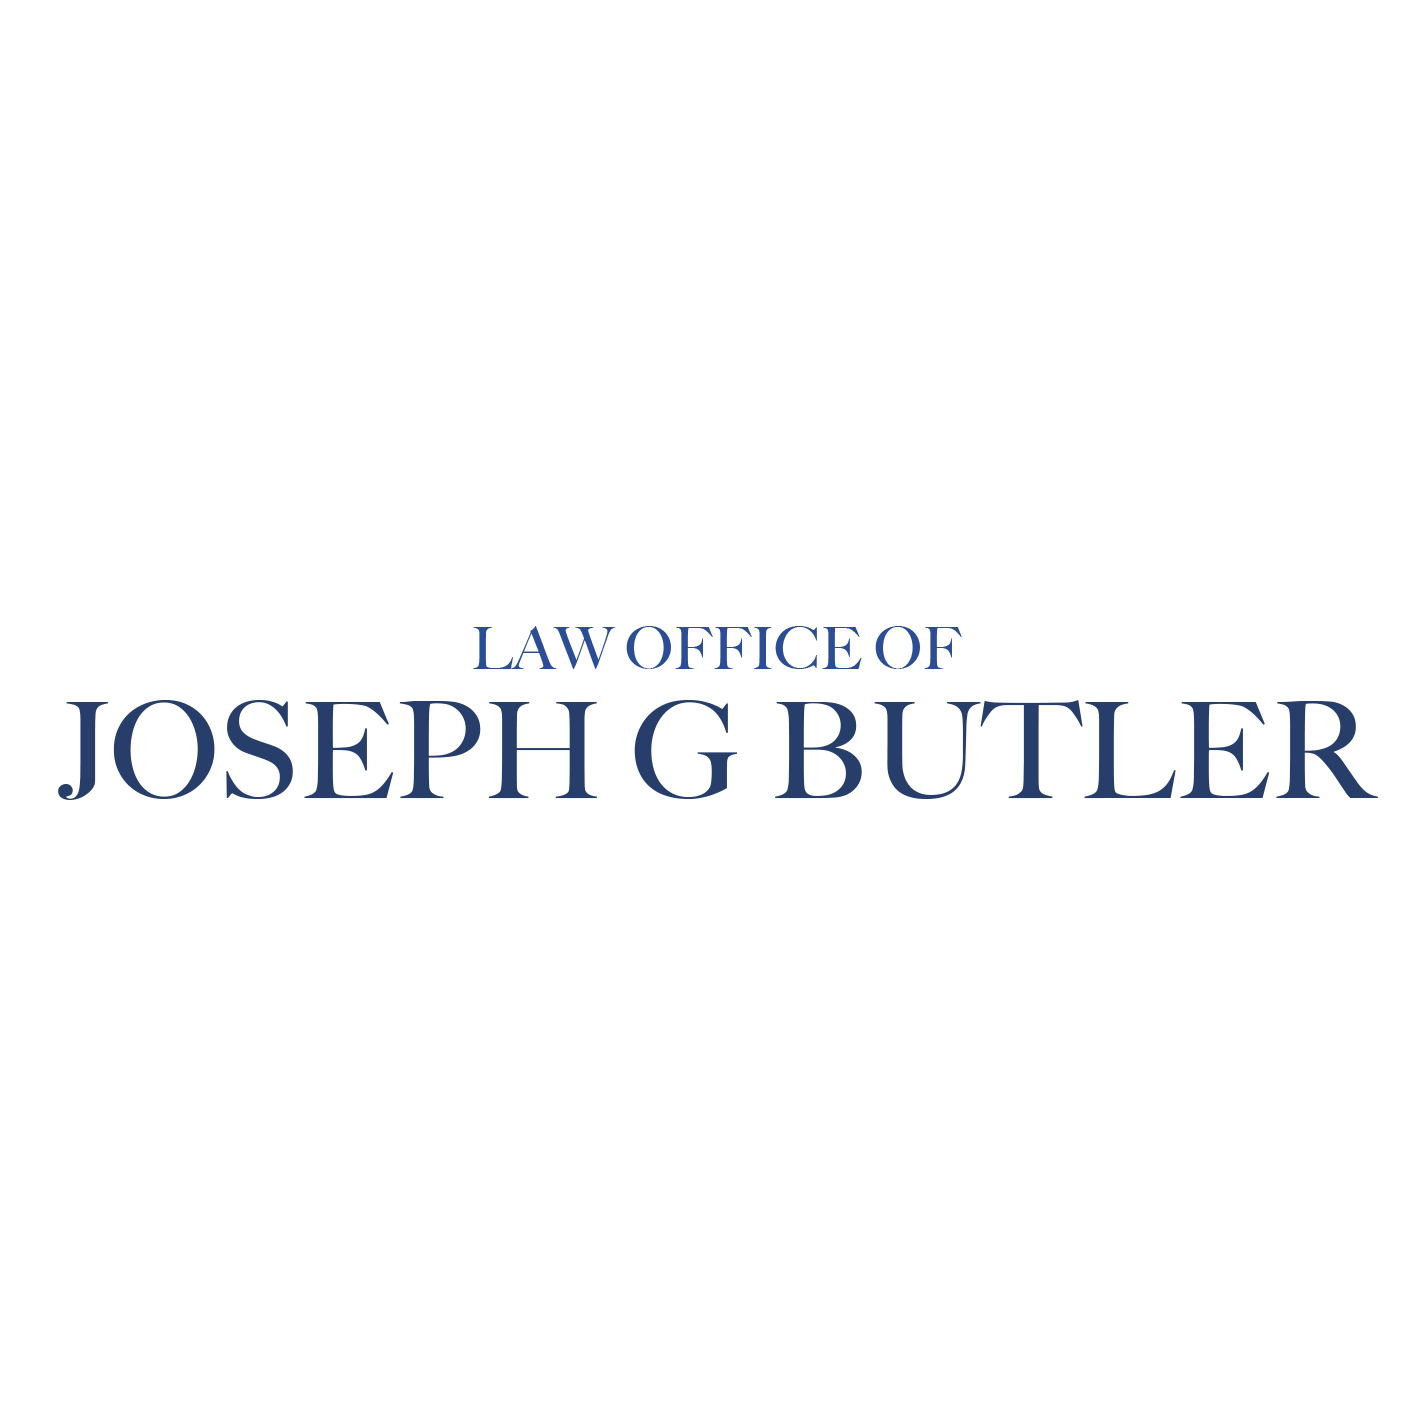 Law Office of Joseph G Butler